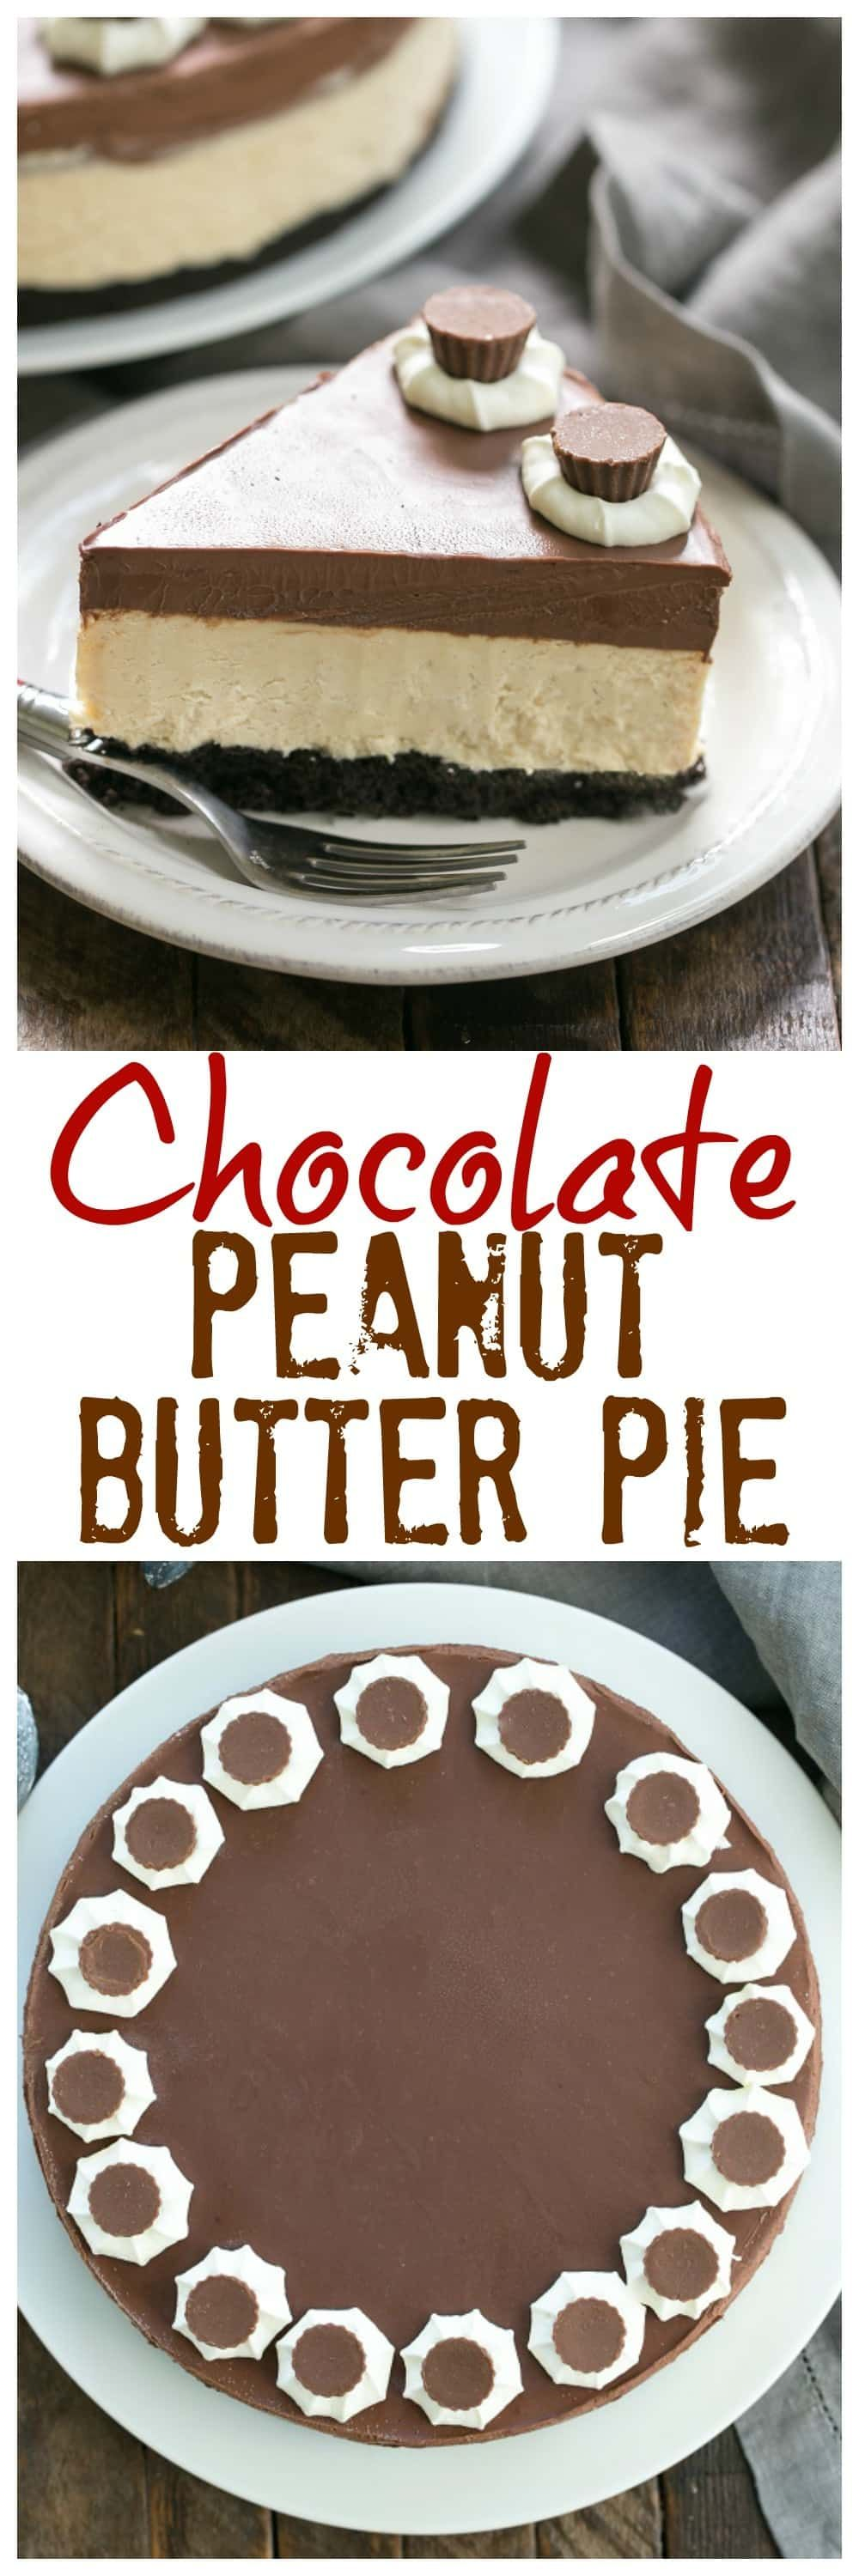 Chocolate Peanut Butter Pie - Chocolate cookie crust, peanut butter mousse and a thick layer of ganache make this one out of this world dessert!